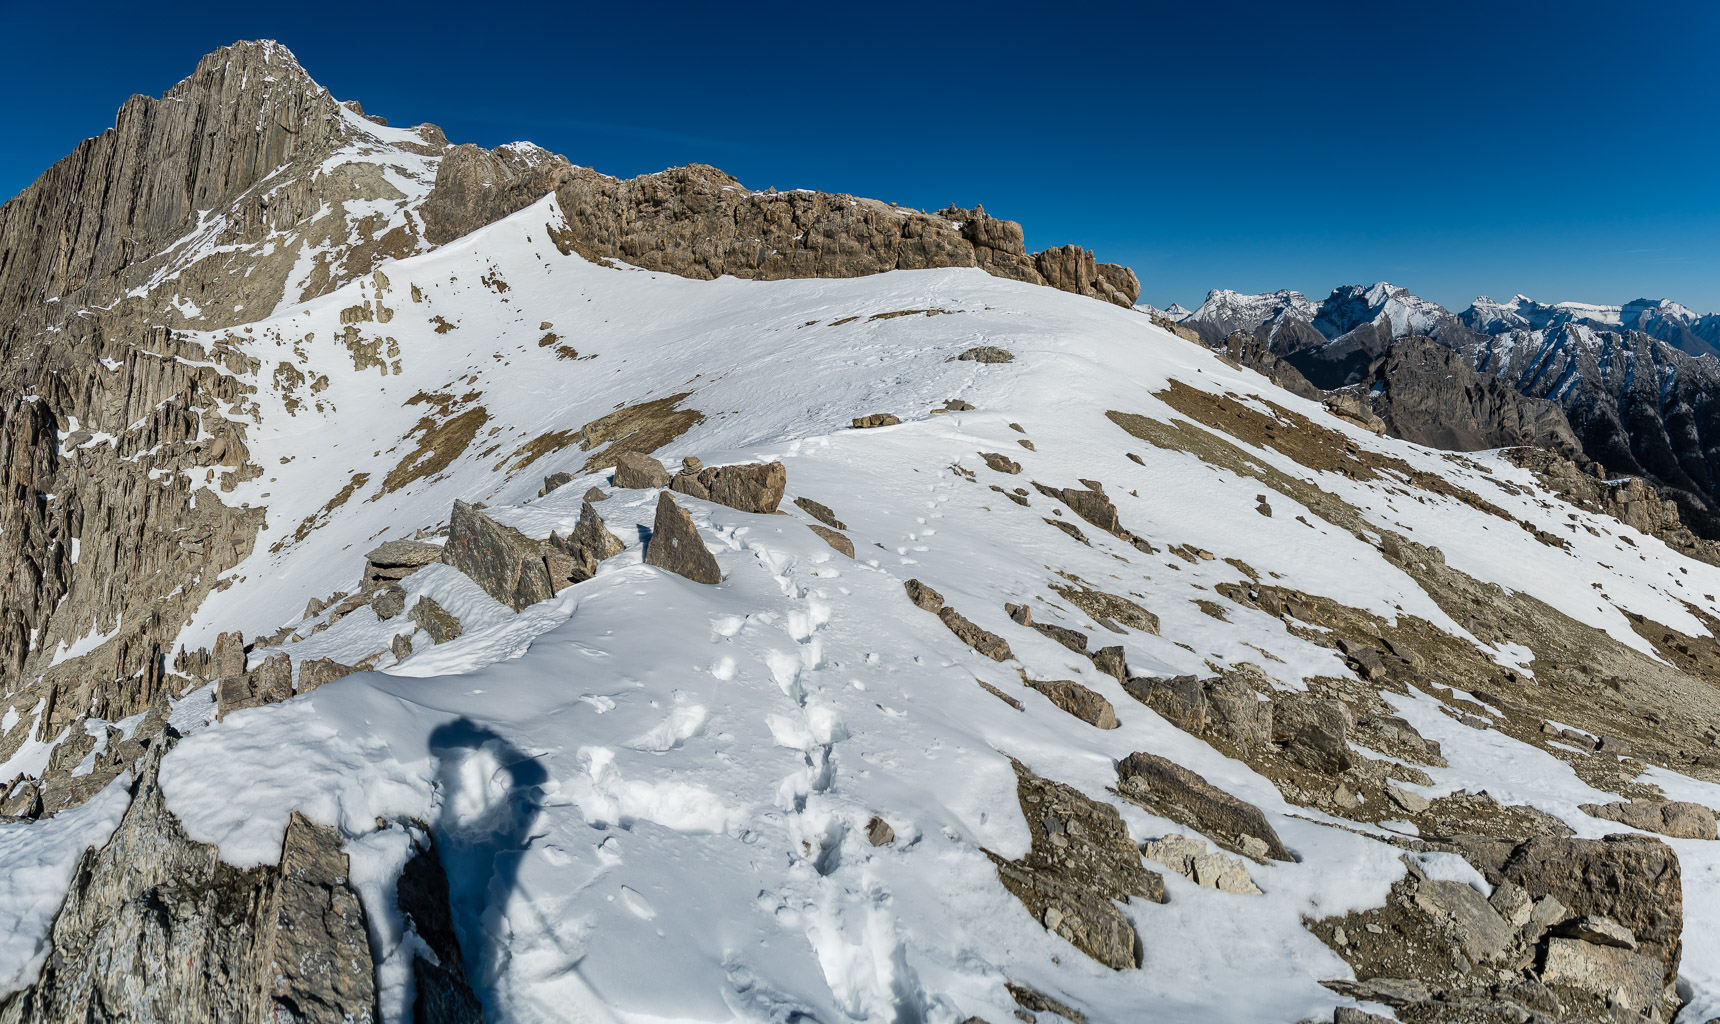 Looking ahead to the false summit at left. Note the rock wall just ahead.